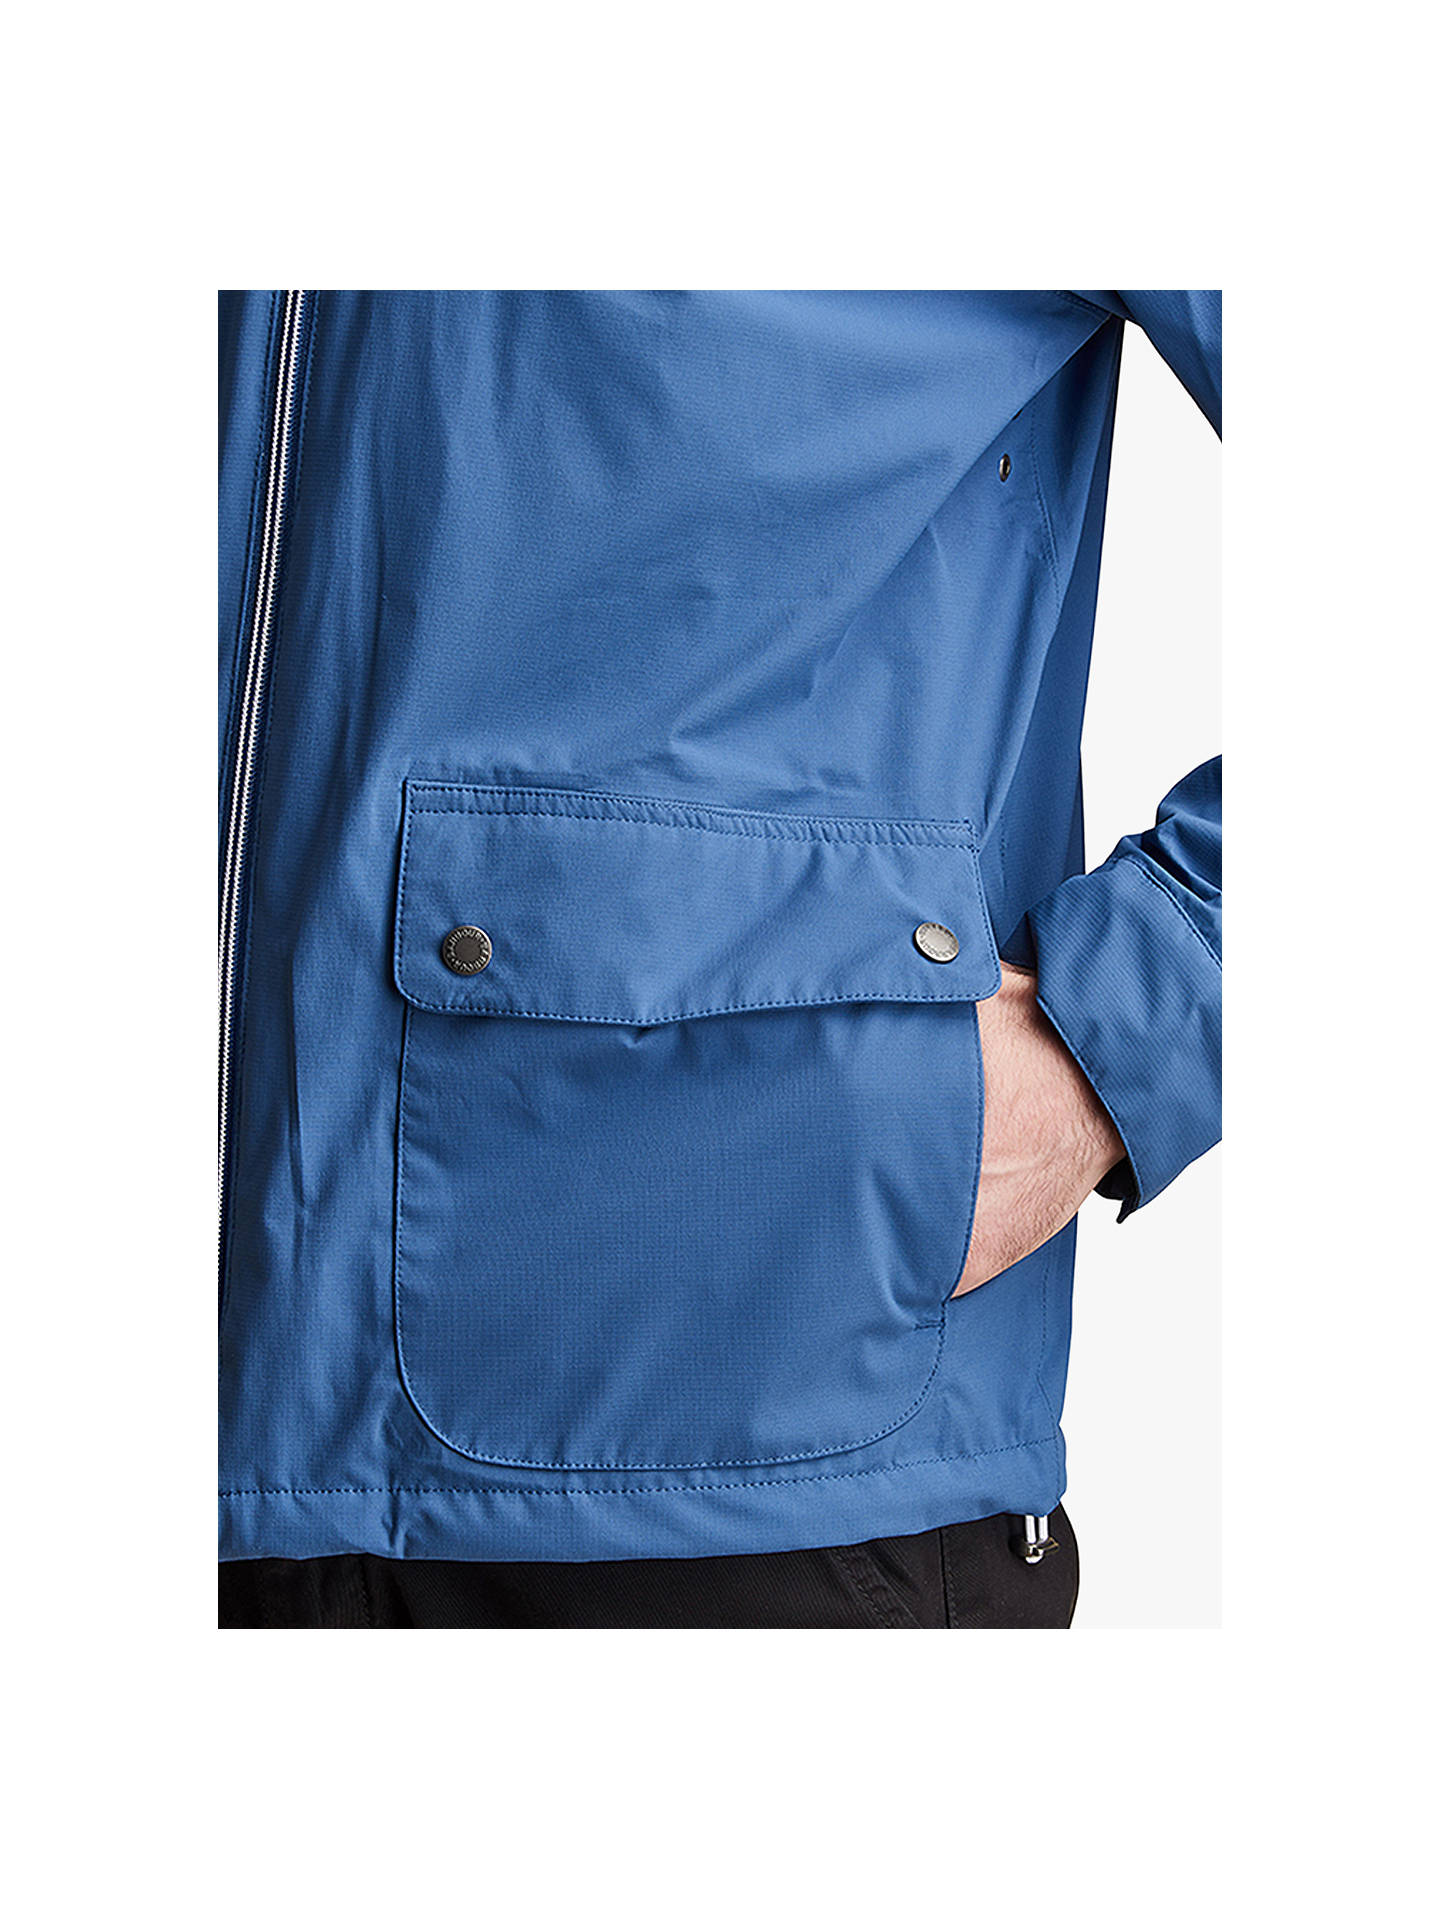 4906f2b61a34d ... Buy Barbour Howtown Waterproof Jacket, Loch Blue, S Online at  johnlewis.com ...